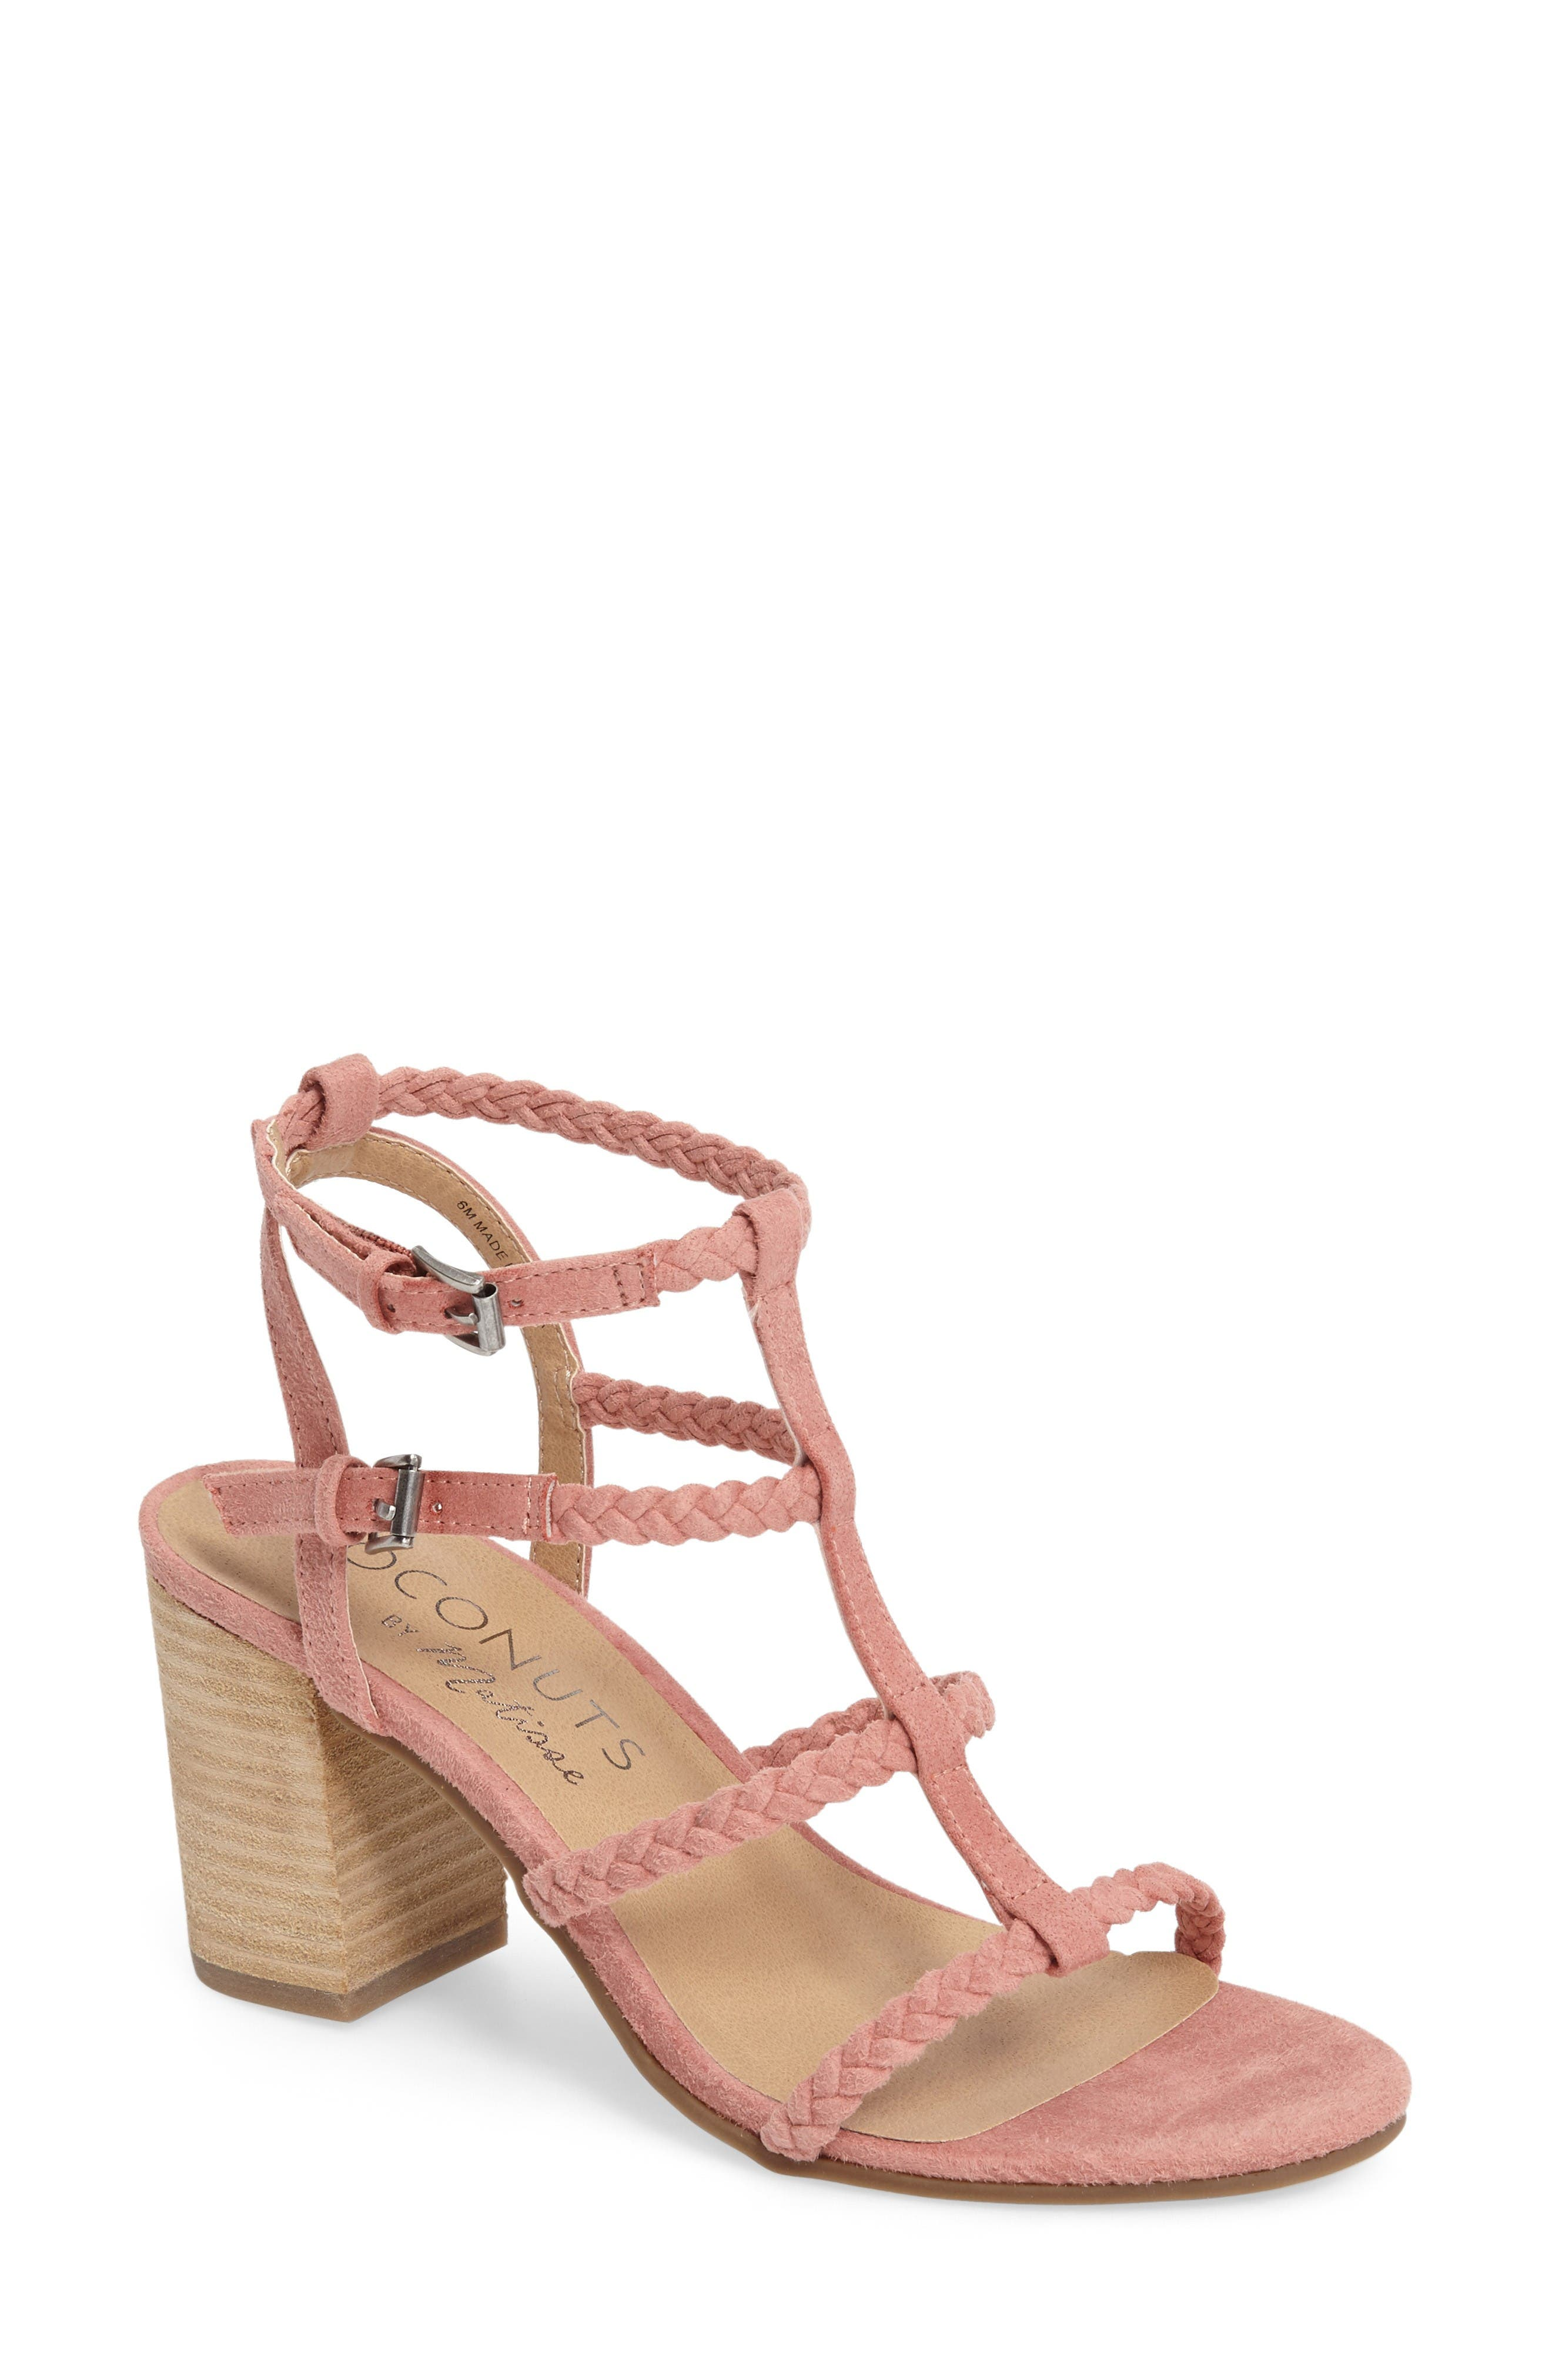 Coconuts by Matisse Cora Sandal,                         Main,                         color, Pink Suede